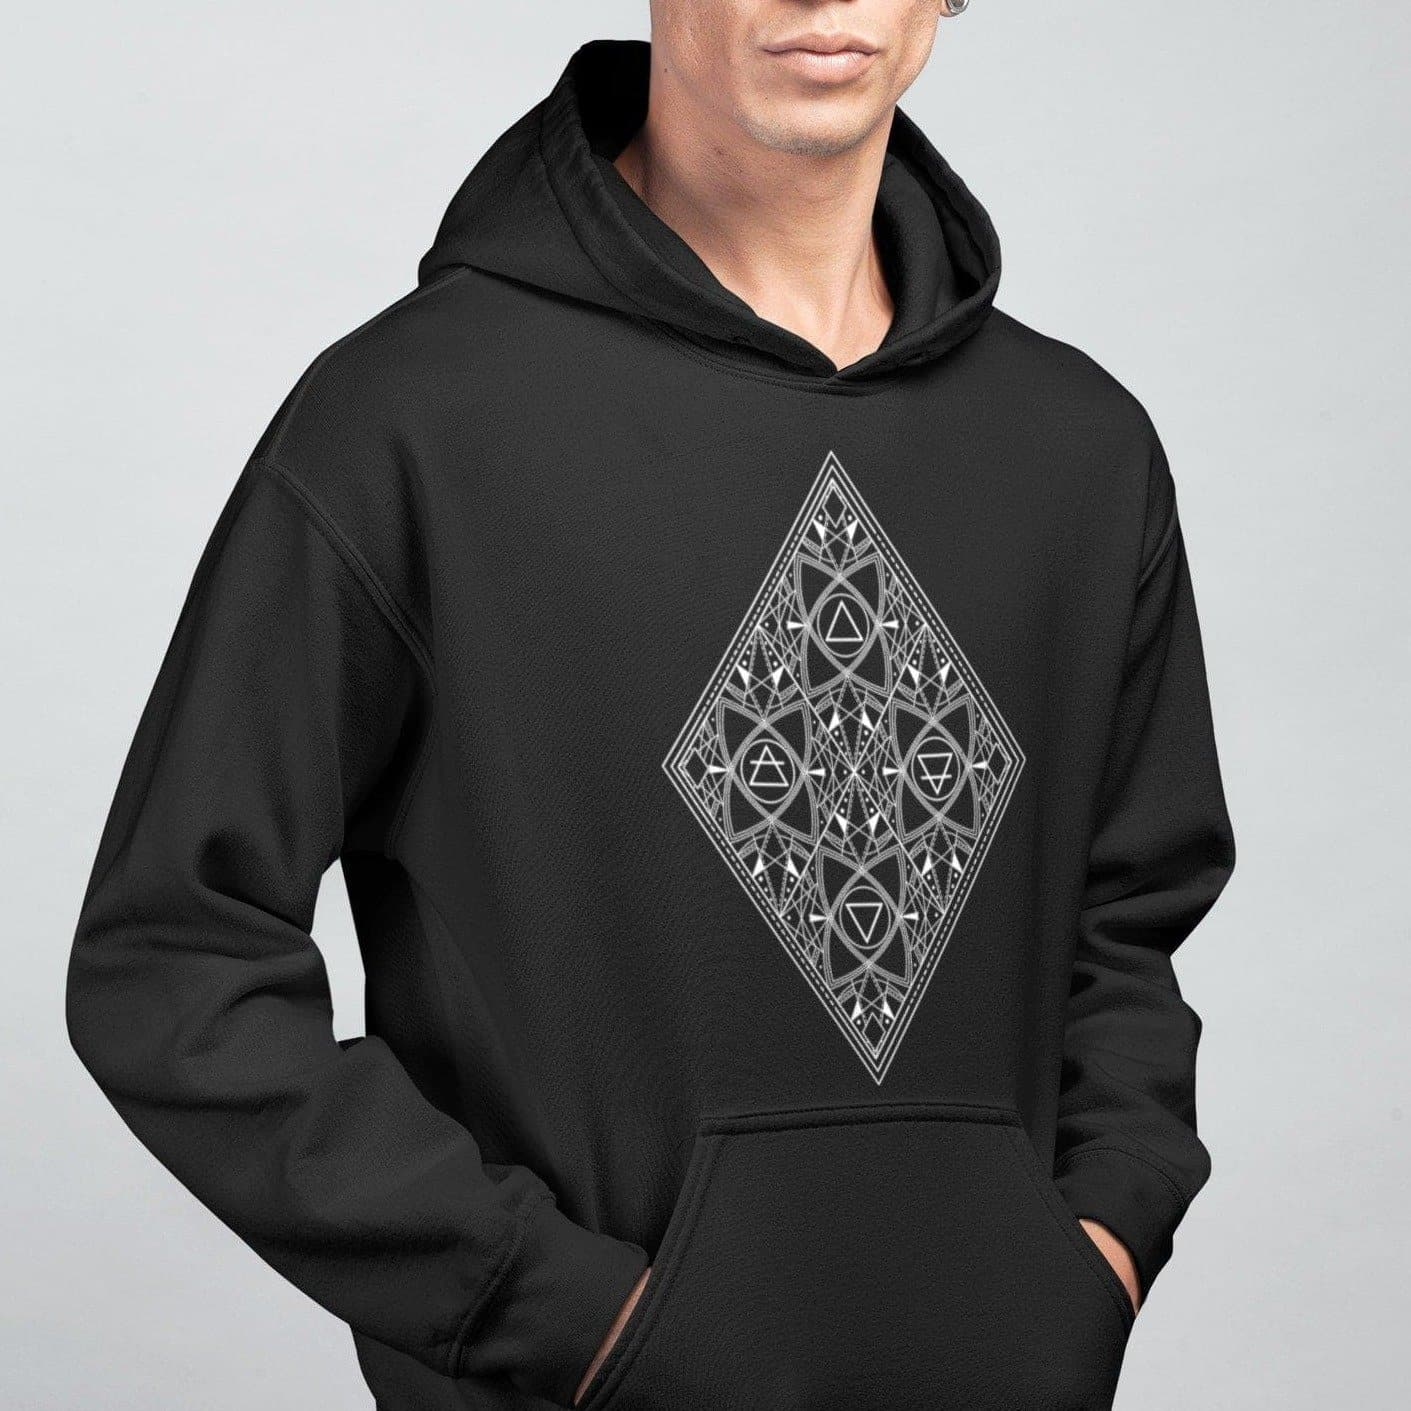 Hoodie Wiccan Earth Air Fire Water | Alchemy Symbols Unisex Hoodie Ancient Treasures Ancientreasures Viking Odin Thor Mjolnir Celtic Ancient Egypt Norse Norse Mythology